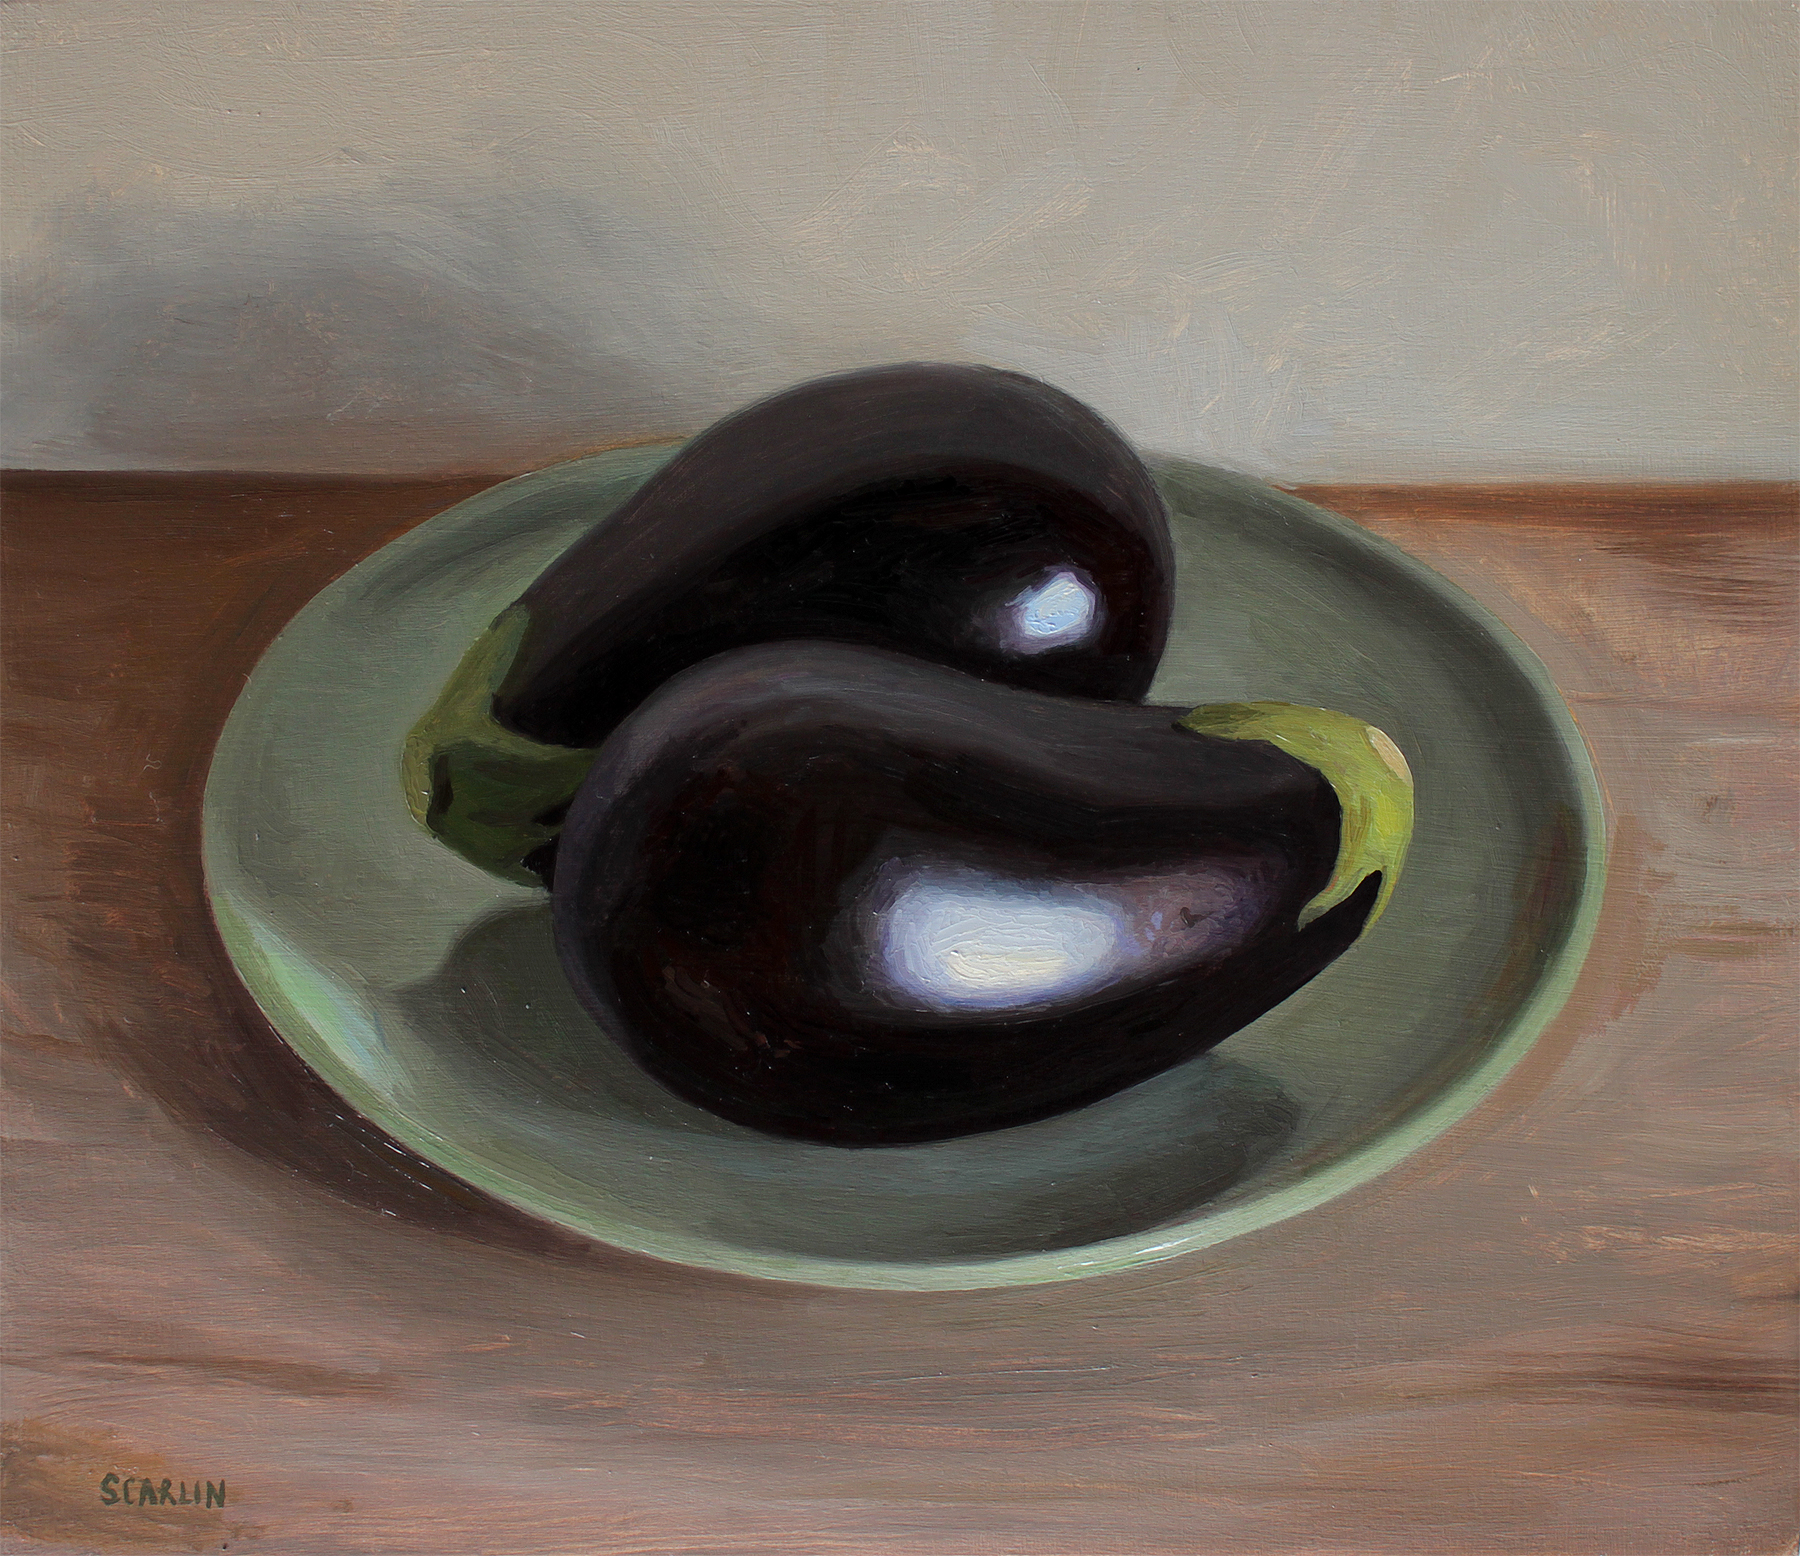 Eggplant on a plate   Oil on panel   30x35cm    2017    Private collection